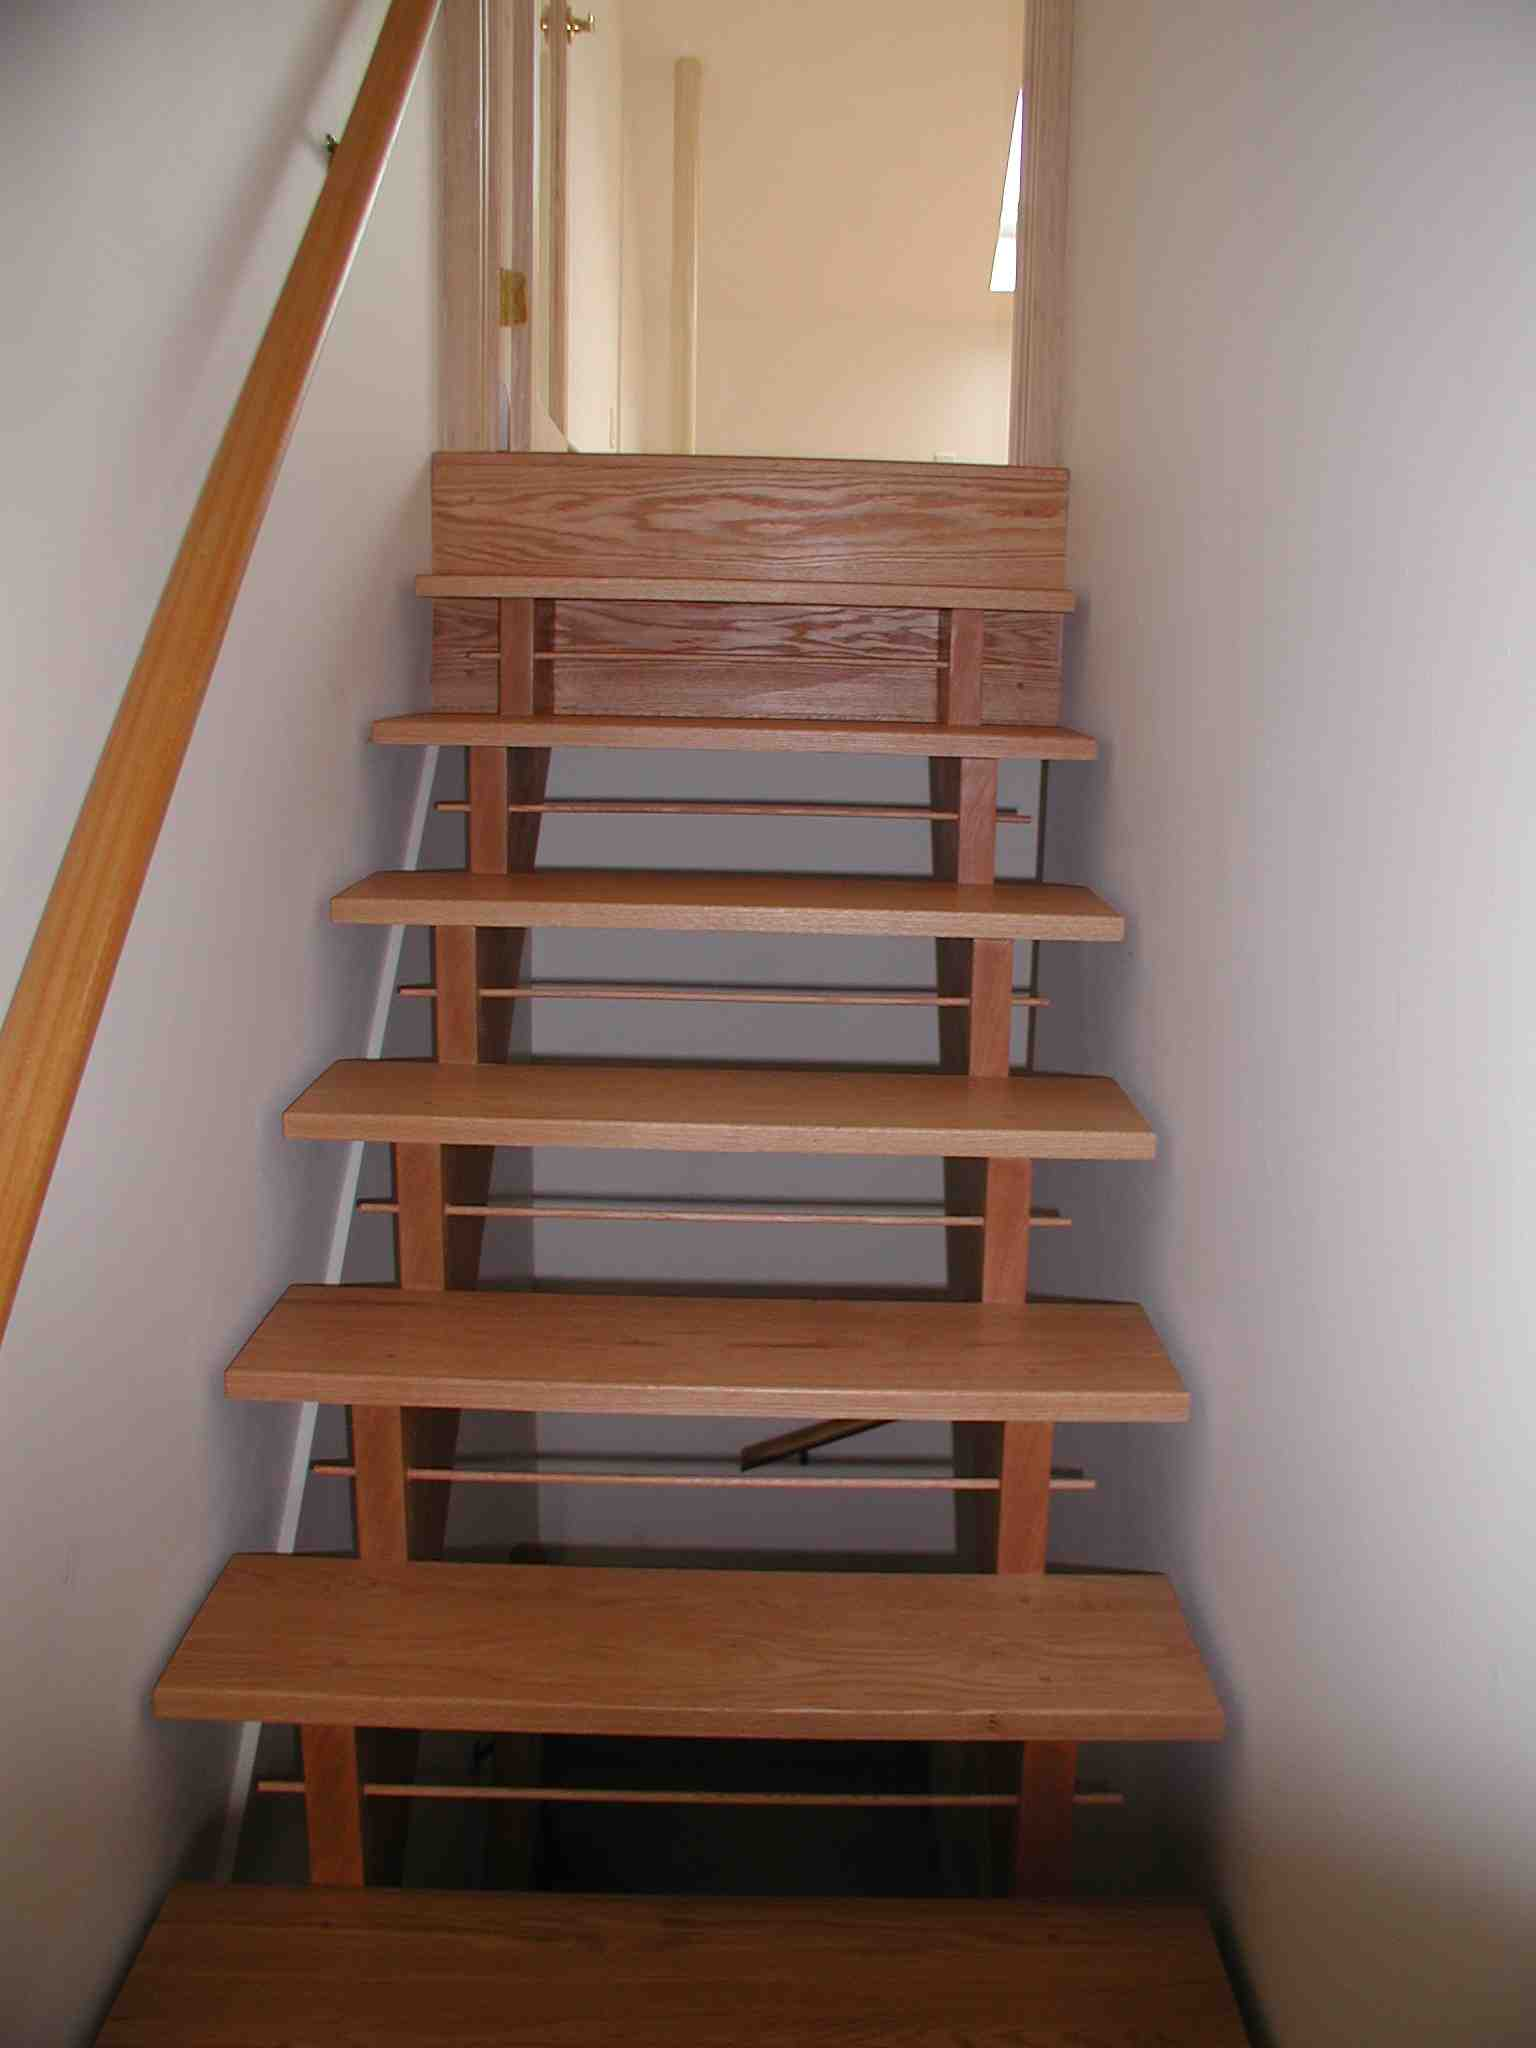 York Spiral Stair Wood Stairs Designed Built Installed Repaired NYC New York City NY Brooklyn Manhattan staircase ...